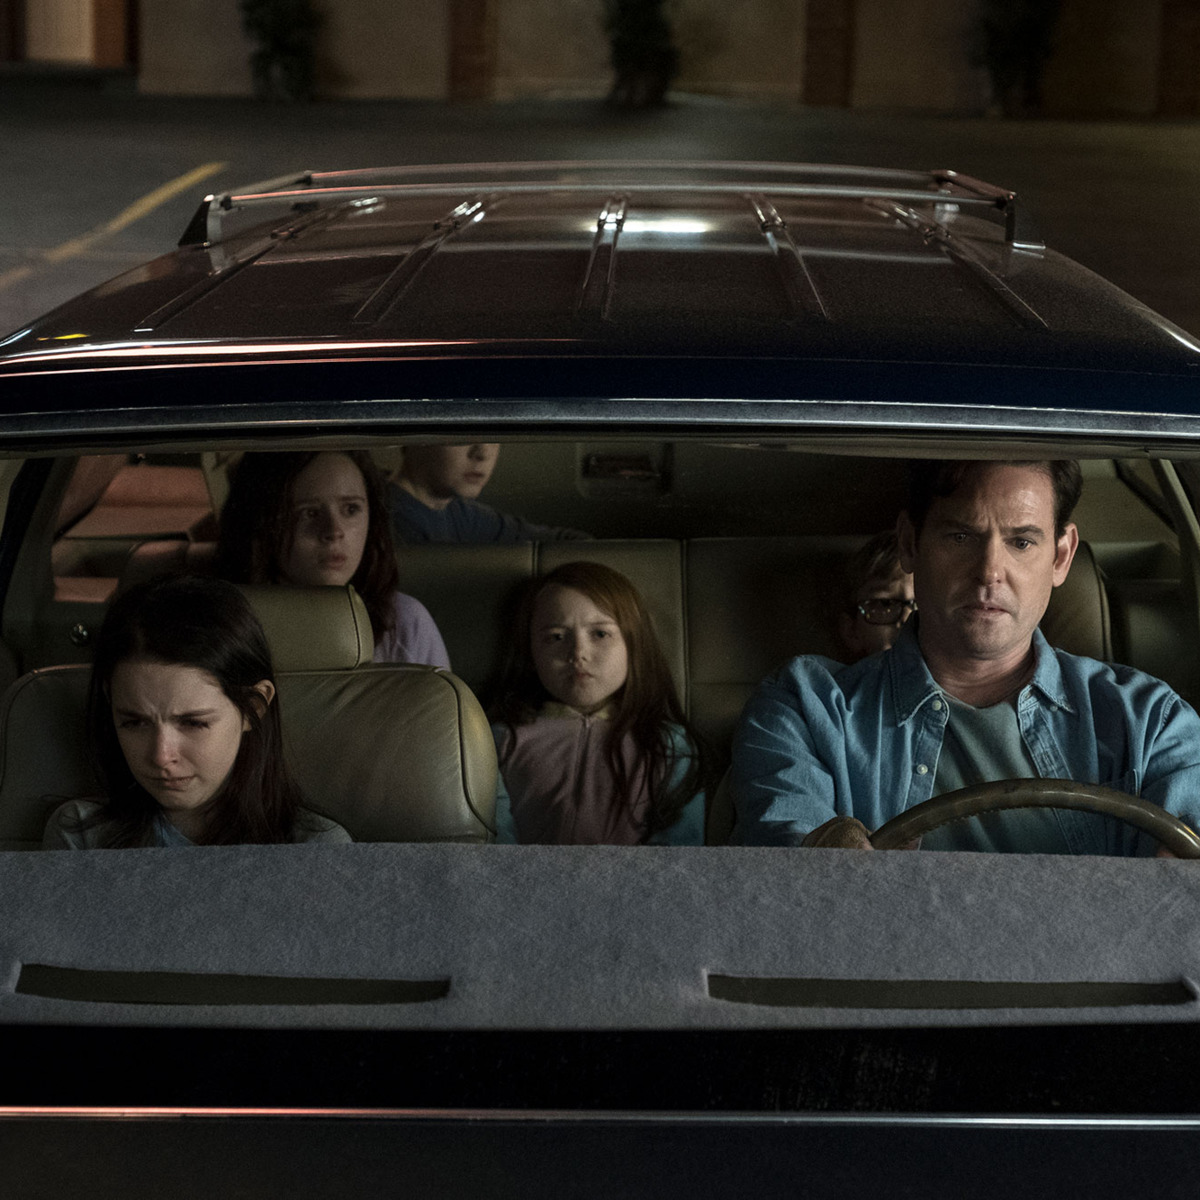 How Scary is The Haunting of Hill House? 13 Scariest Moments